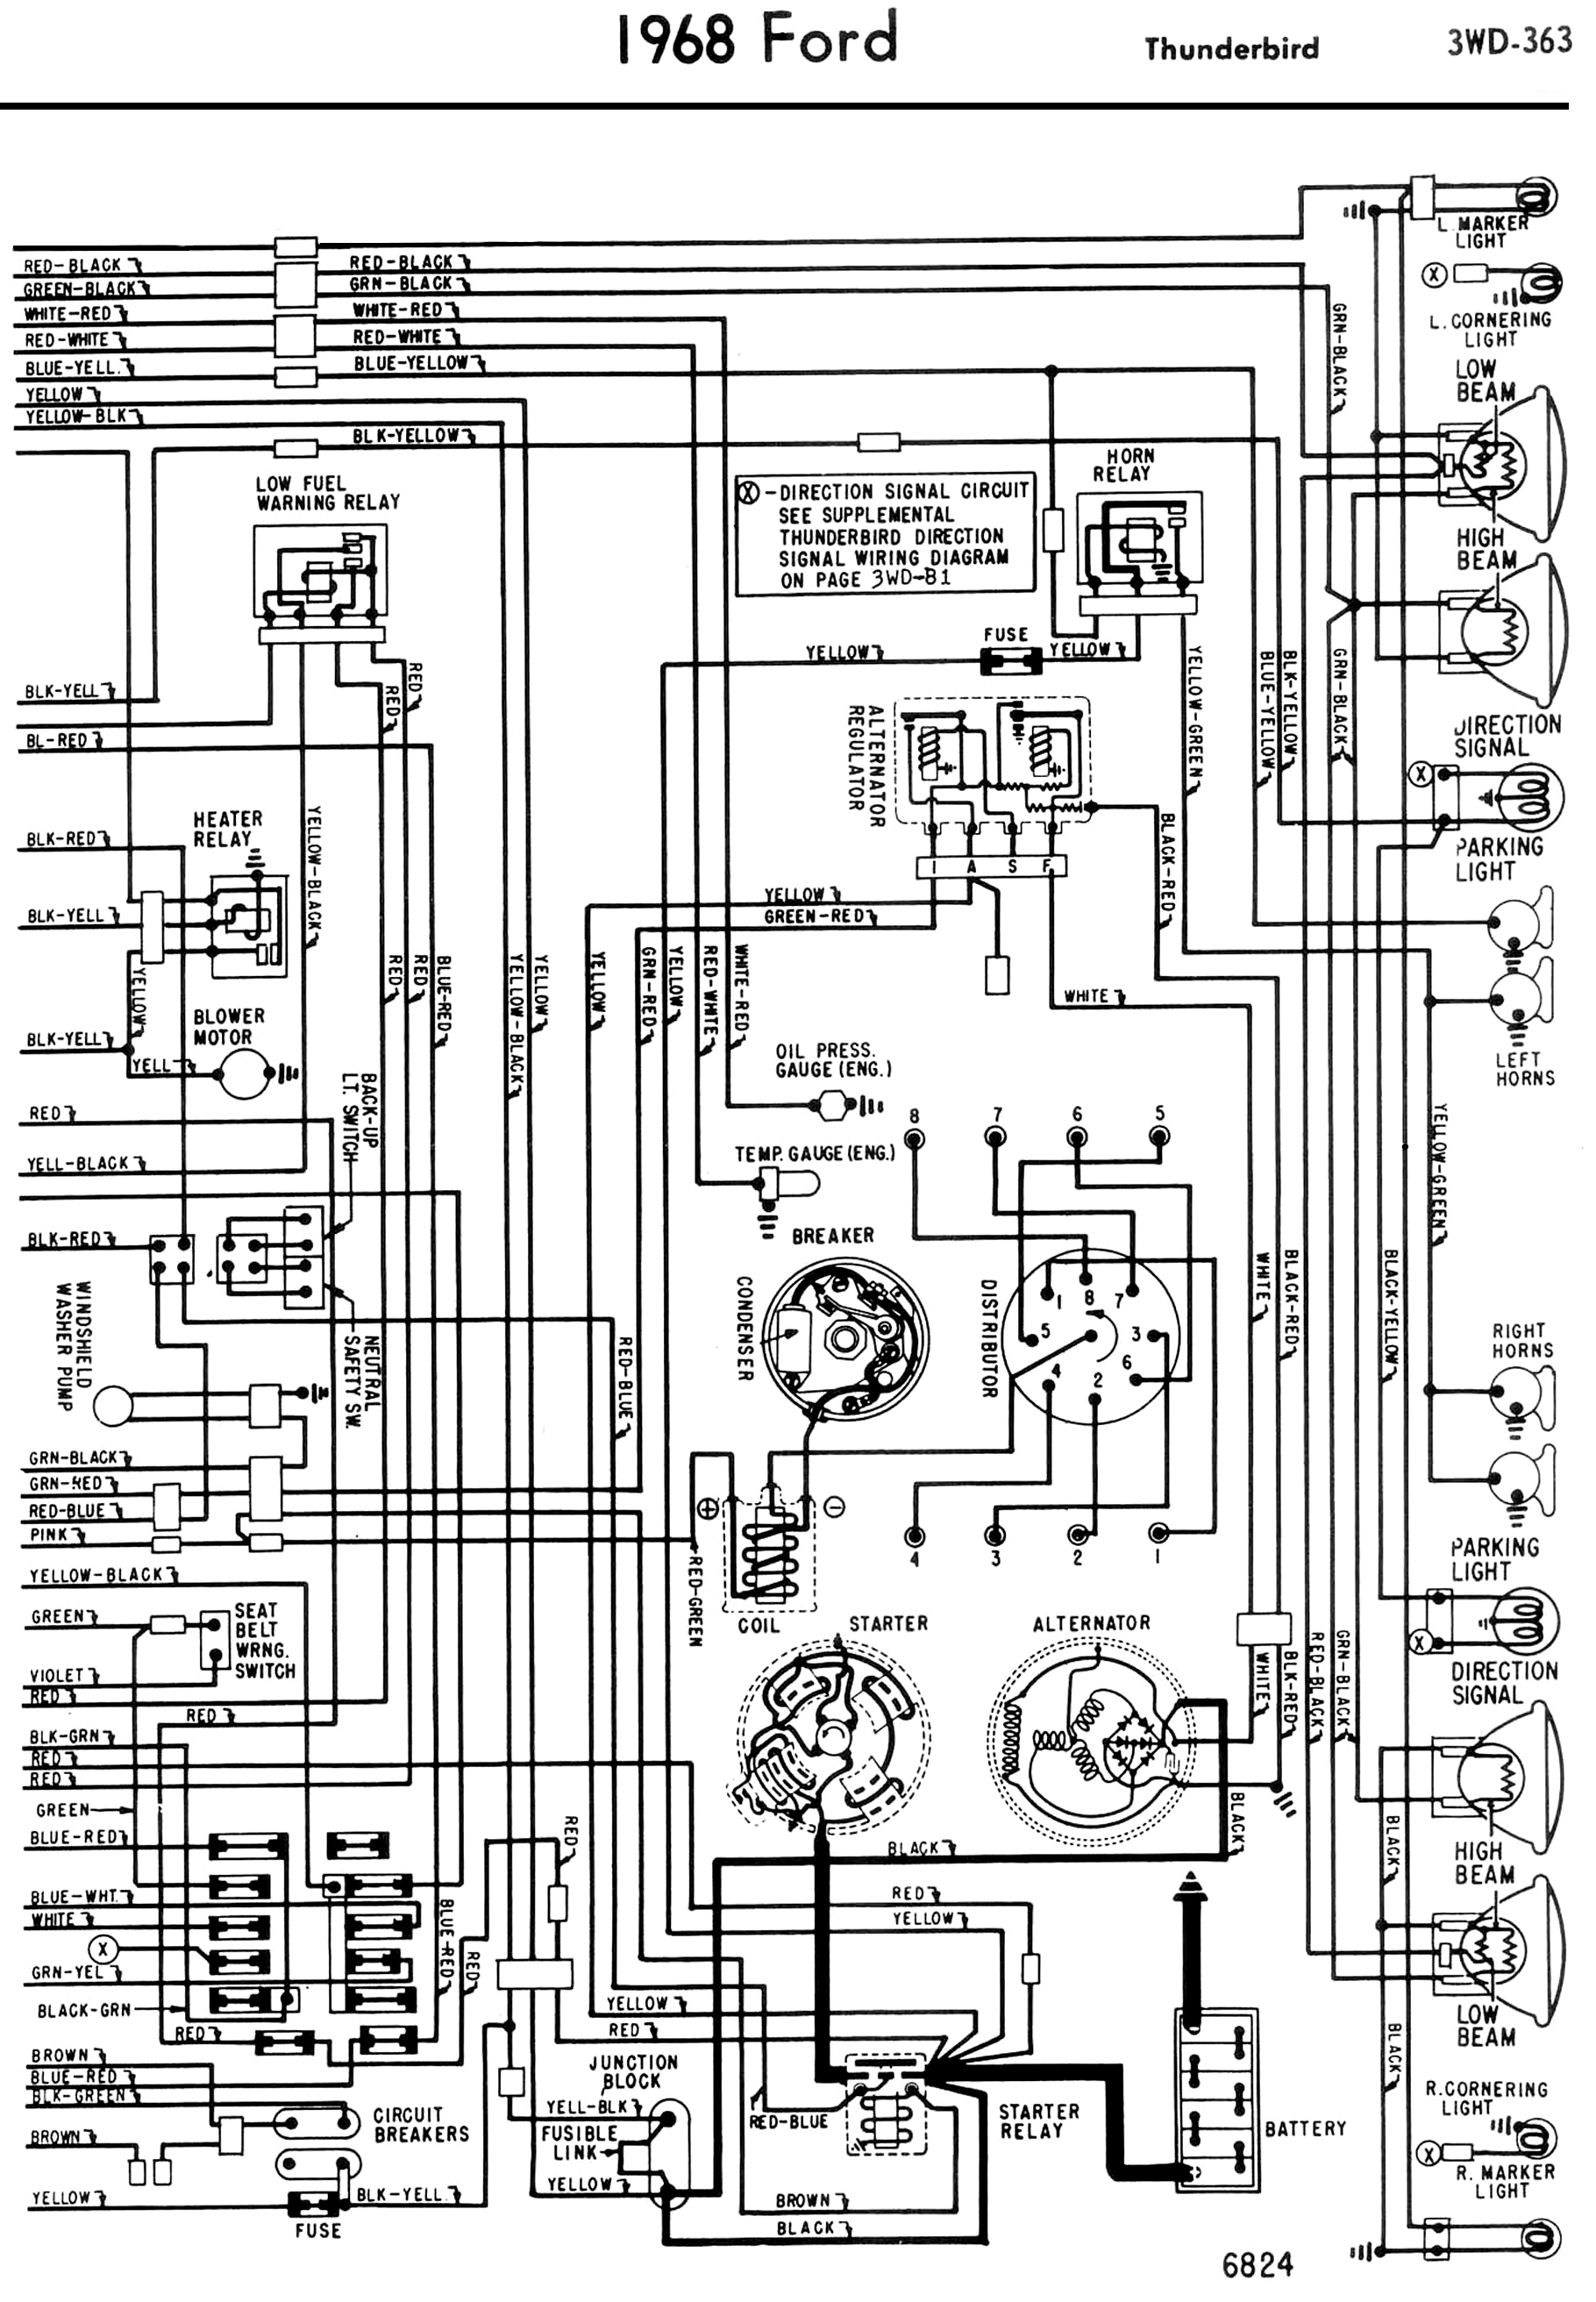 tail light wiring diagram security camera wire color 1965 ford thunderbird turn signal